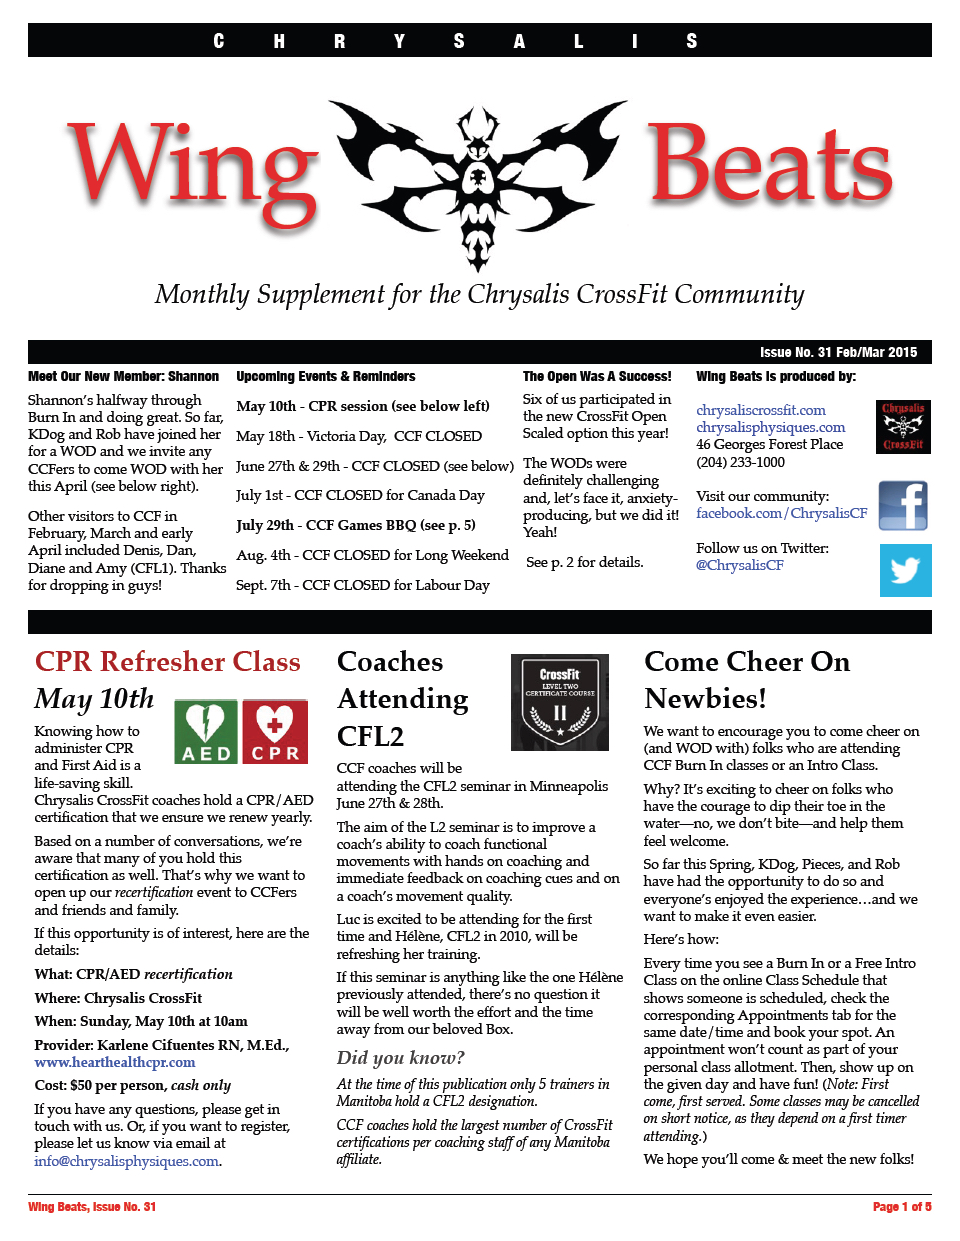 WingBeats Issue #31 - FebMar 2015